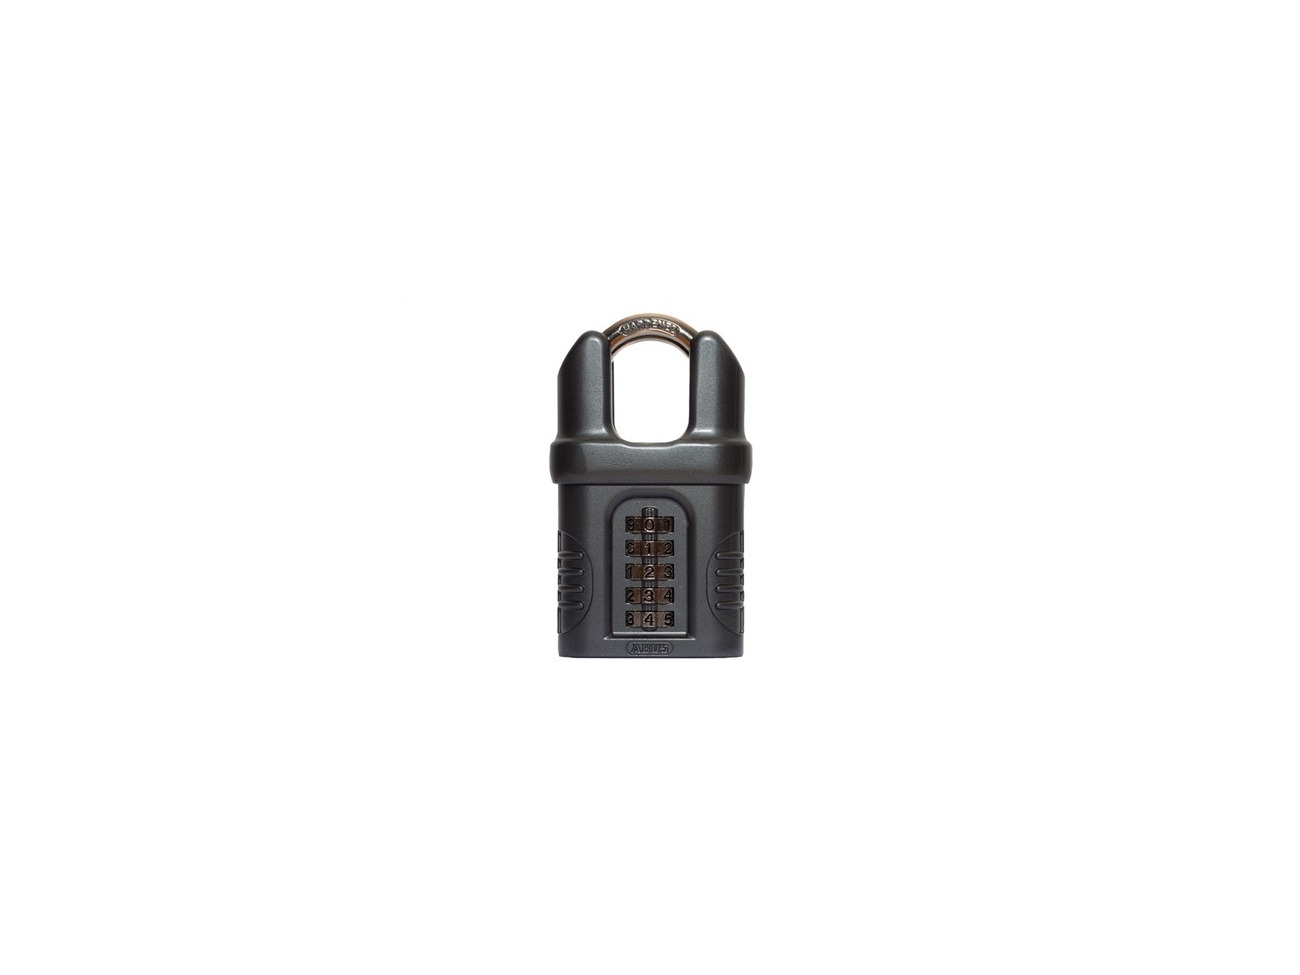 ABUS Mechanical 158CS//65 65mm Closed Shackle Combination Padlock 5 Digit